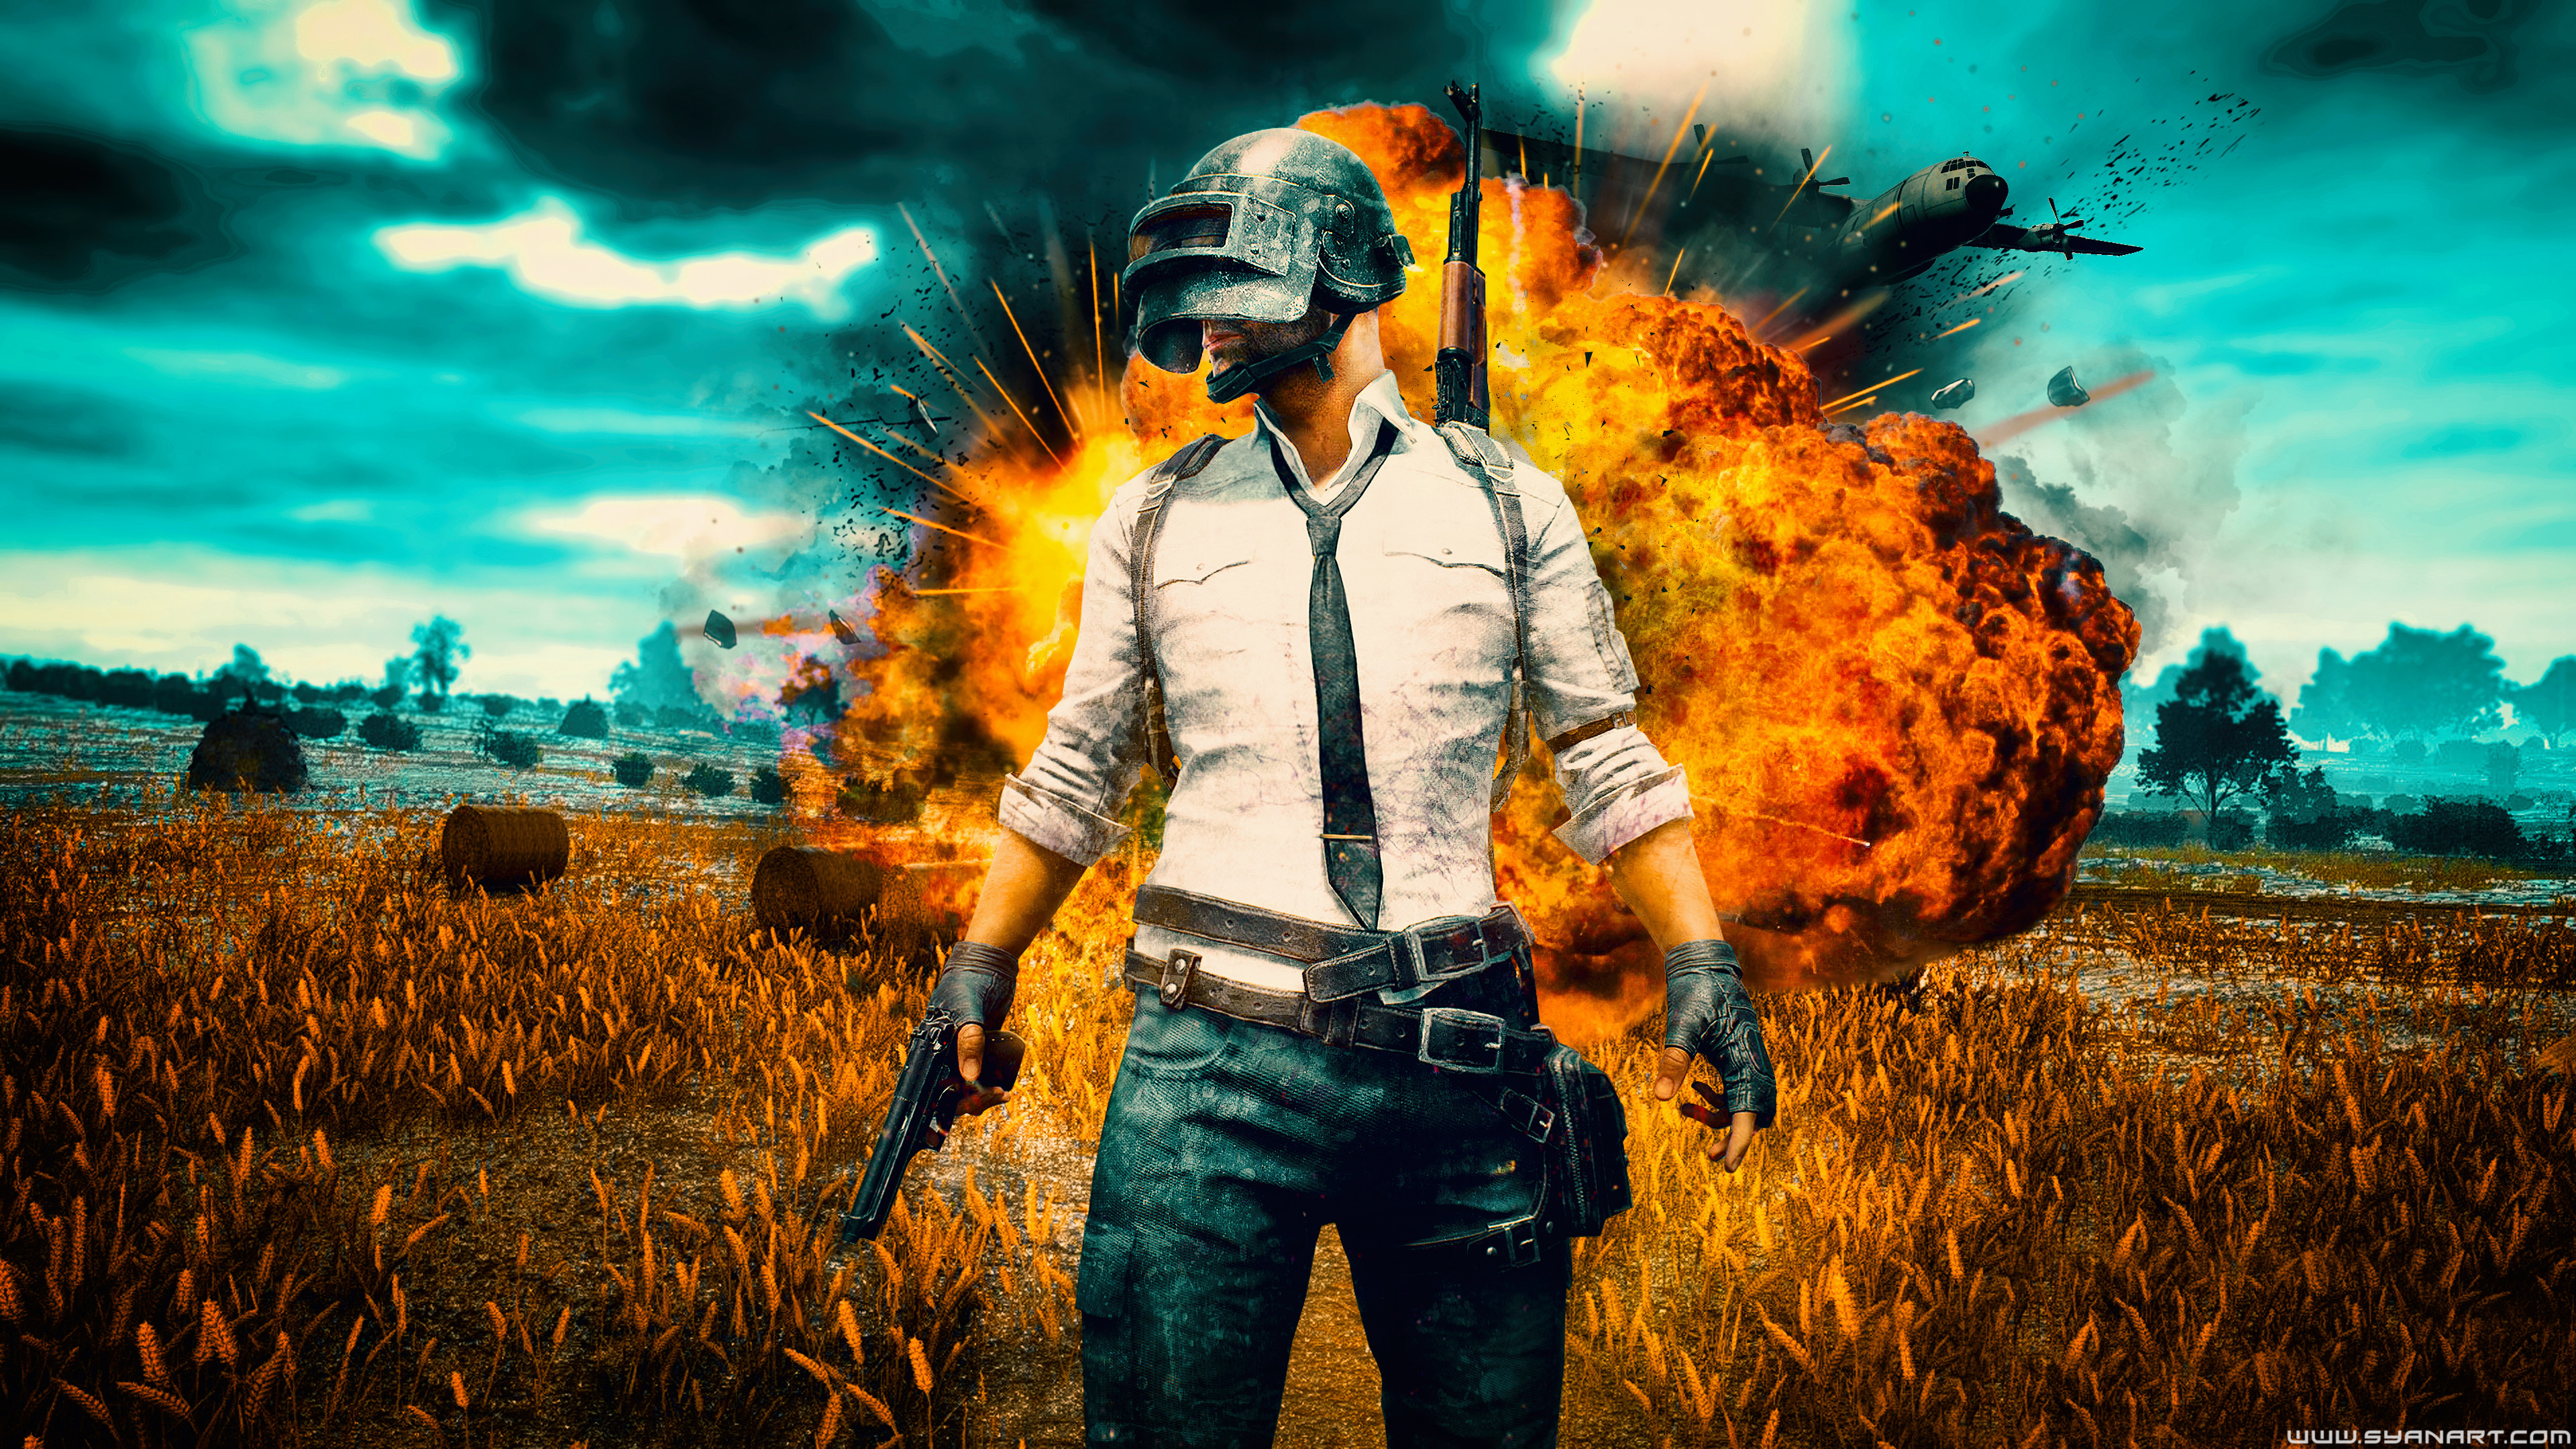 Pubg Wallpaper Hd Pc: Pub Wallpaper (57+ Images